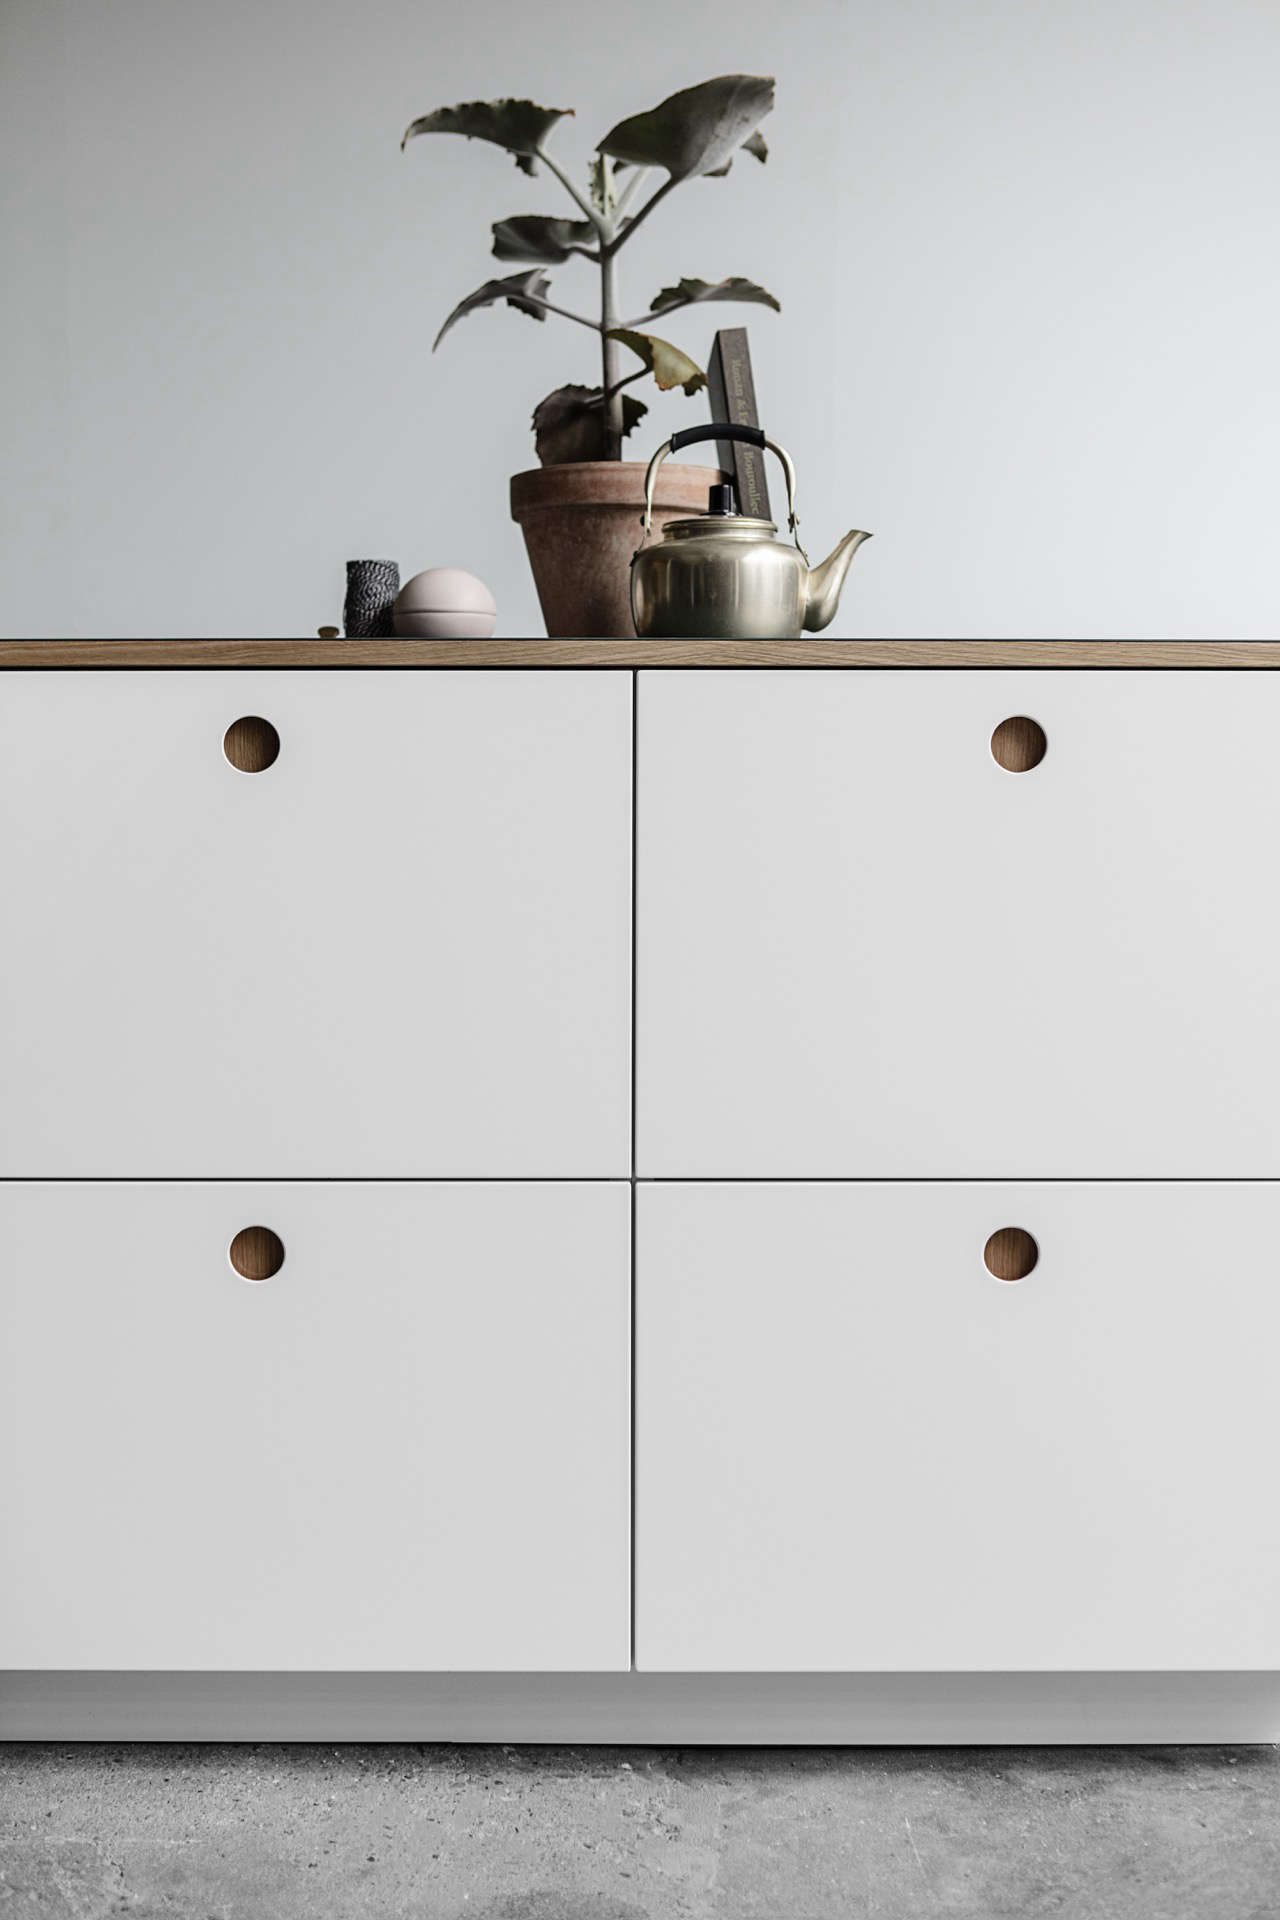 ikea hack: the basis kitchen from reform made with ikea cabinets and reform's f 10